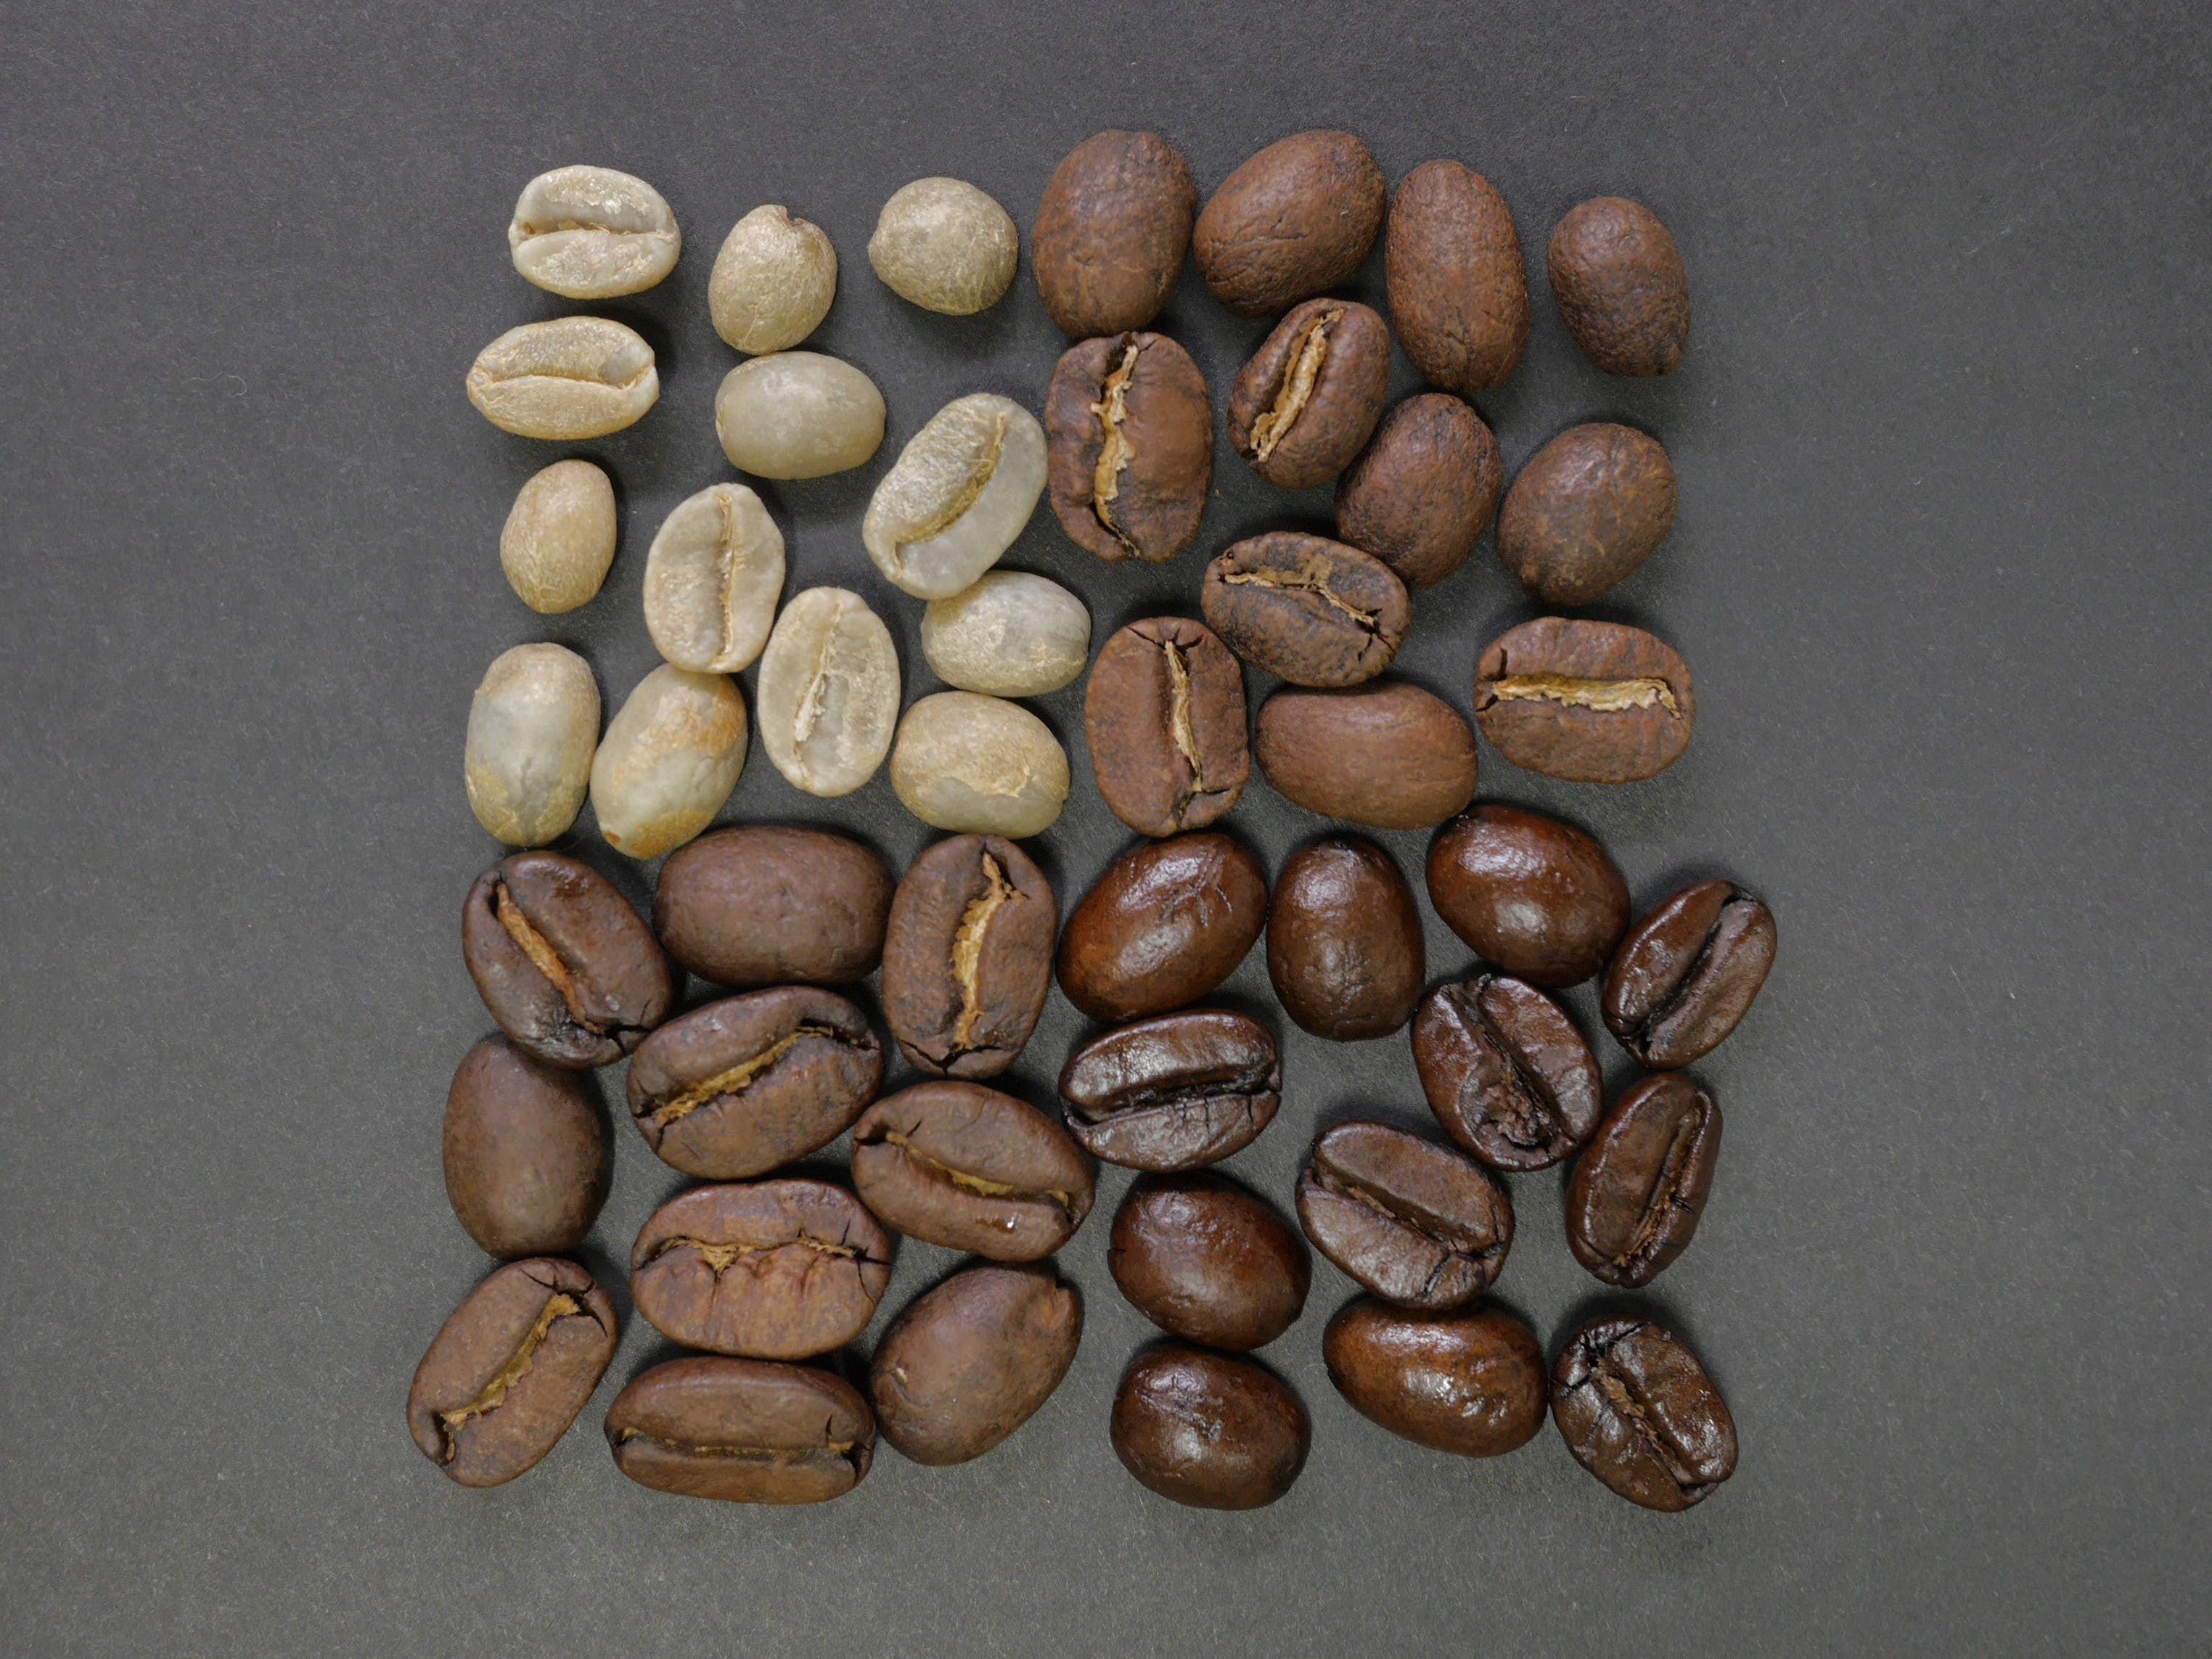 Free stock photo of beans, caffeine, coffee, brown